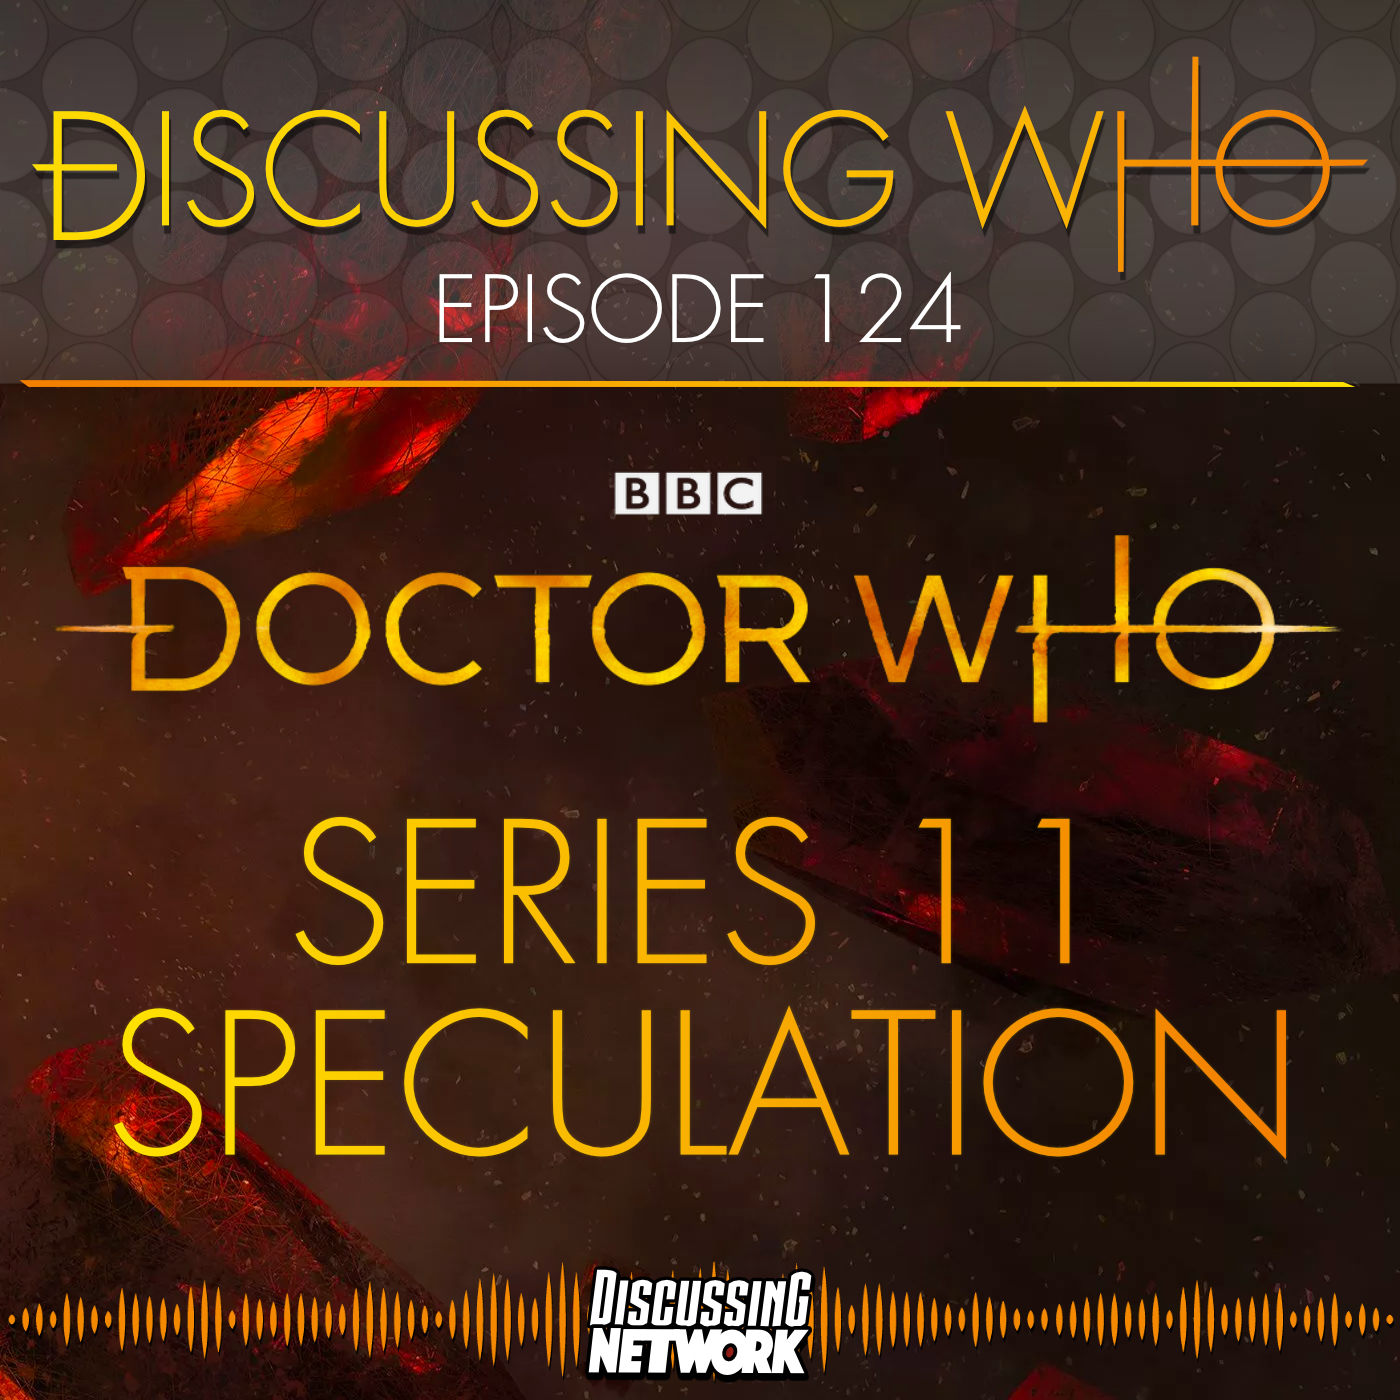 Episode 124: Doctor Who Series 11 Speculation | Discussing